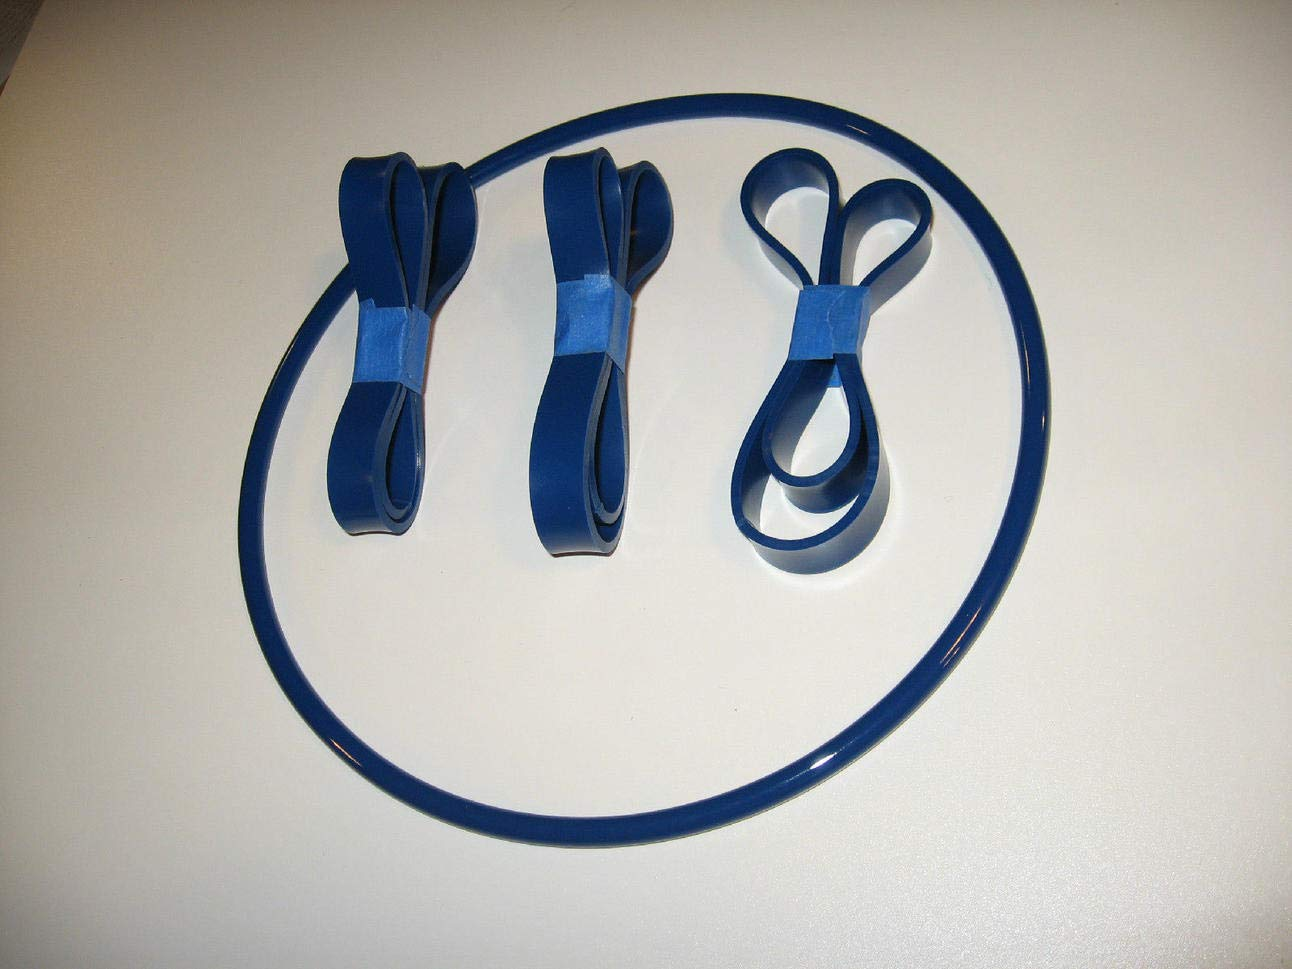 BLUE MAX ROUND DRIVE BELT AND 3 BAND SAW TIRES FOR TRADESMAN T7060 BAND SAW